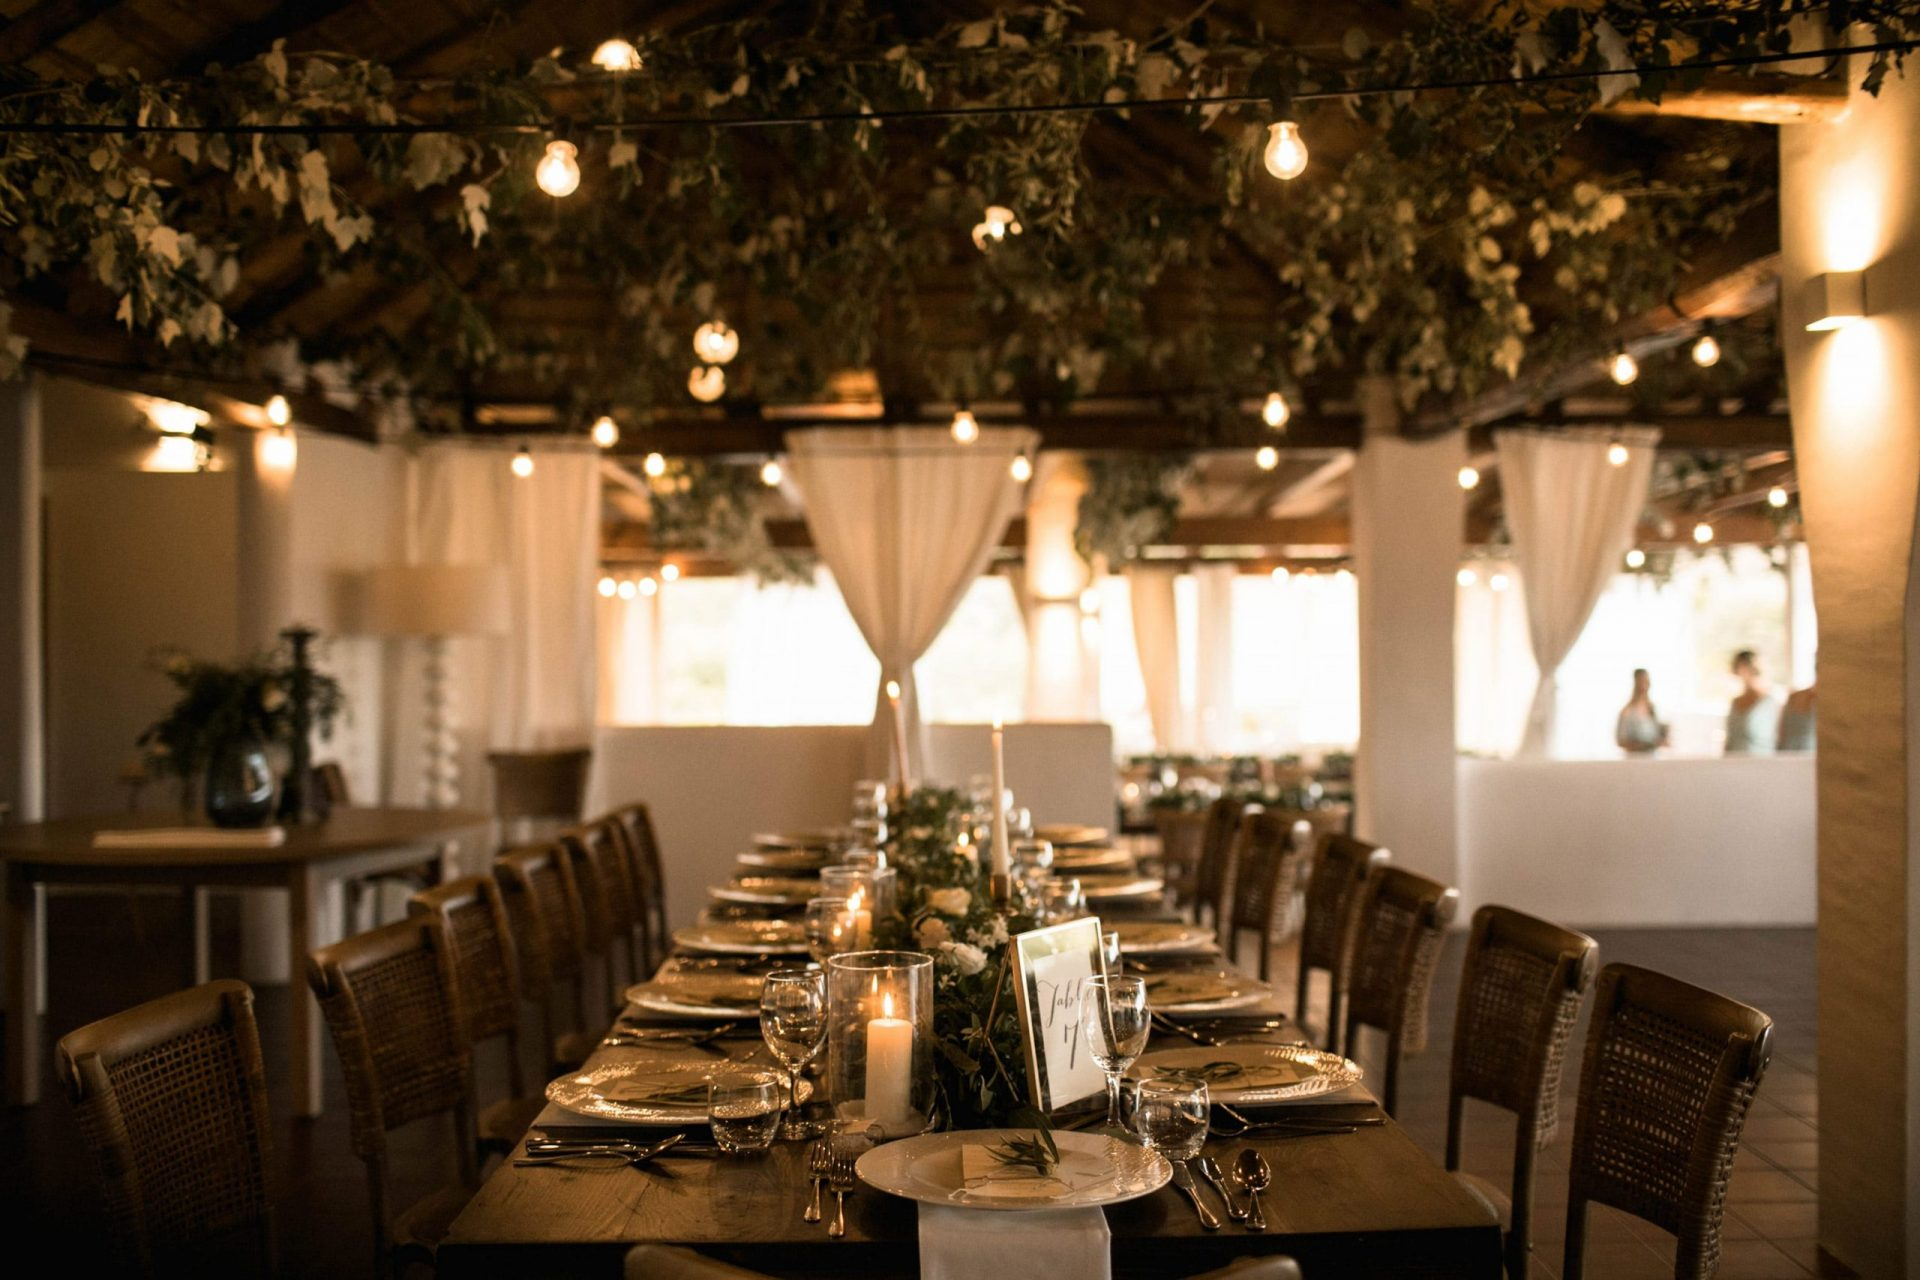 Melanie & Perit, greenery style wedding dinner